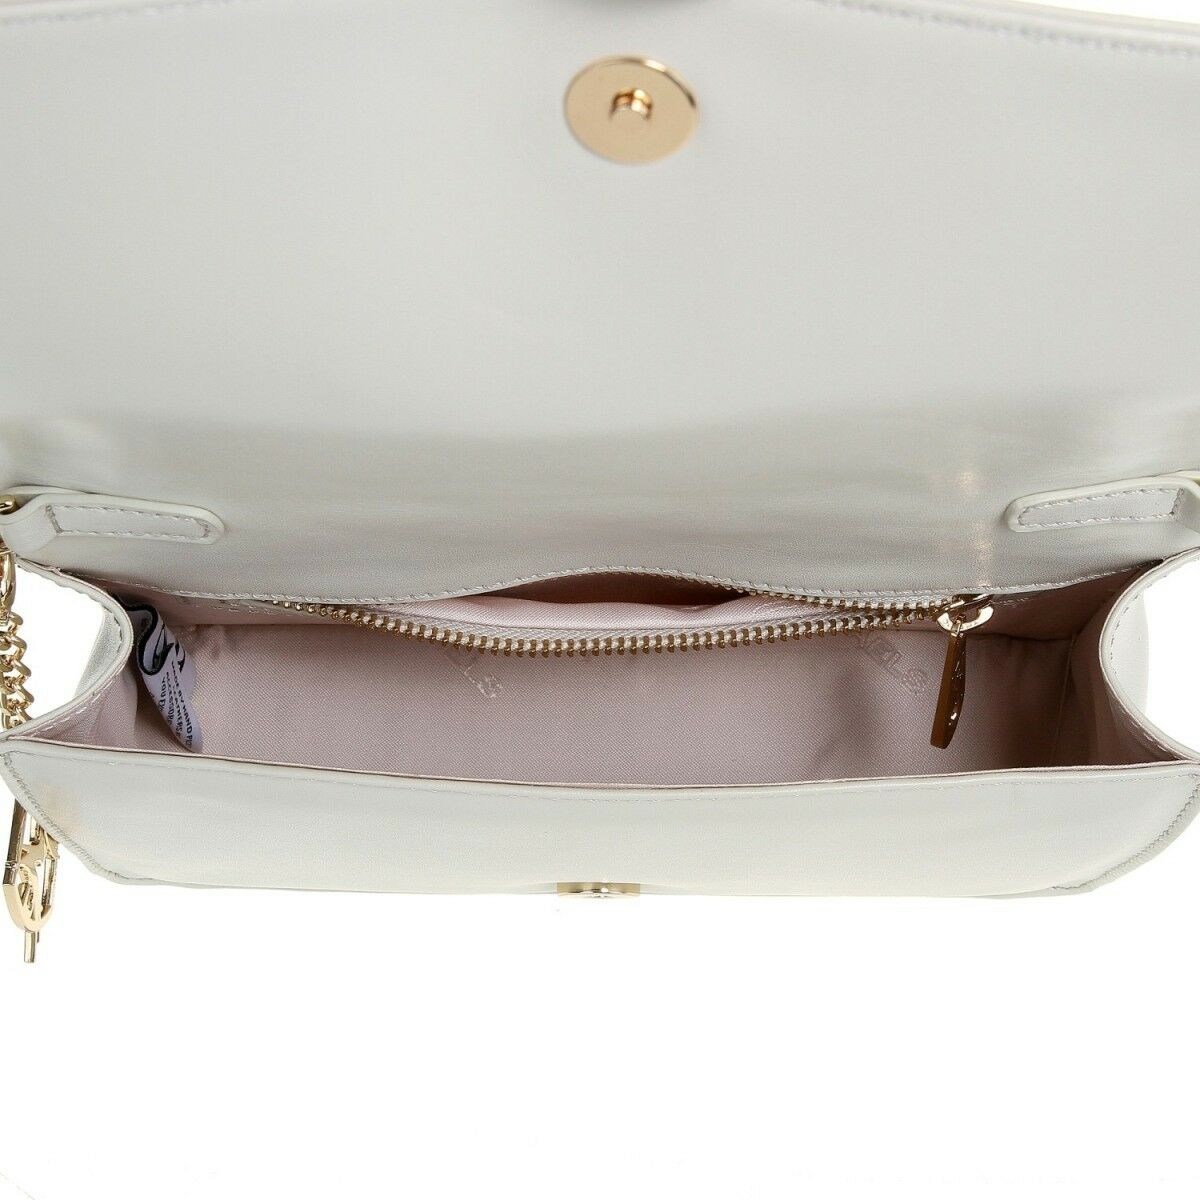 Tanya - Real Nappa Leather Handbag